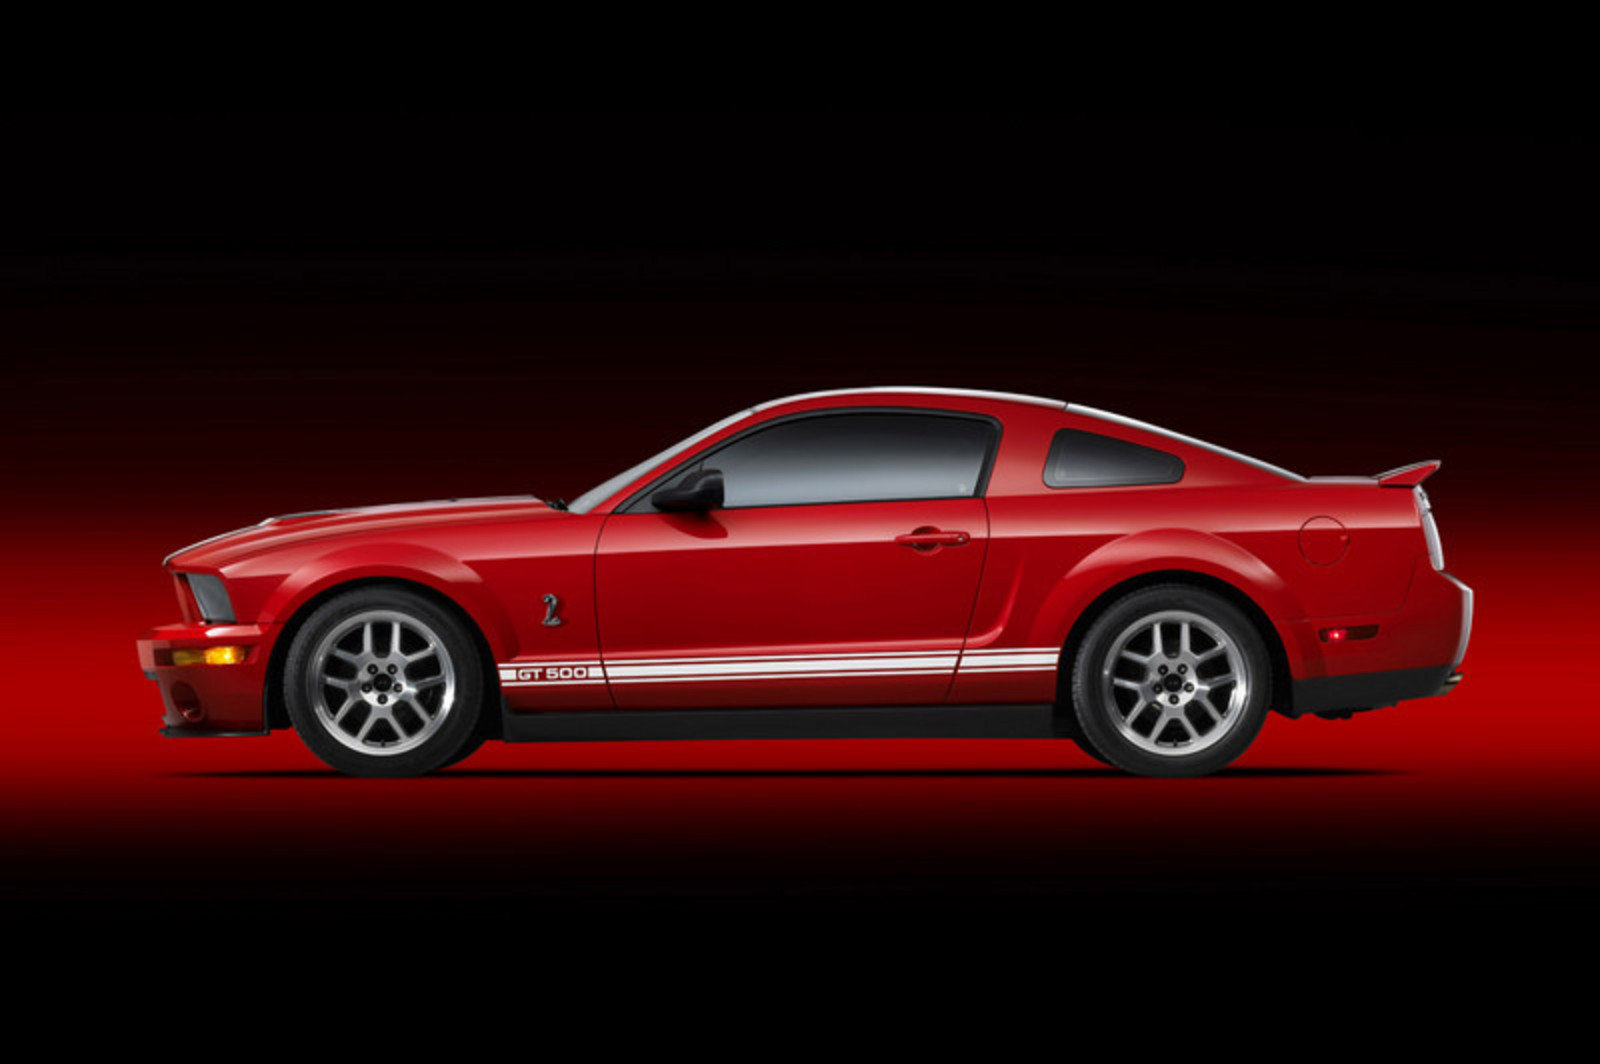 2007 ford mustang shelby gt500 picture 37979 car review top speed. Black Bedroom Furniture Sets. Home Design Ideas